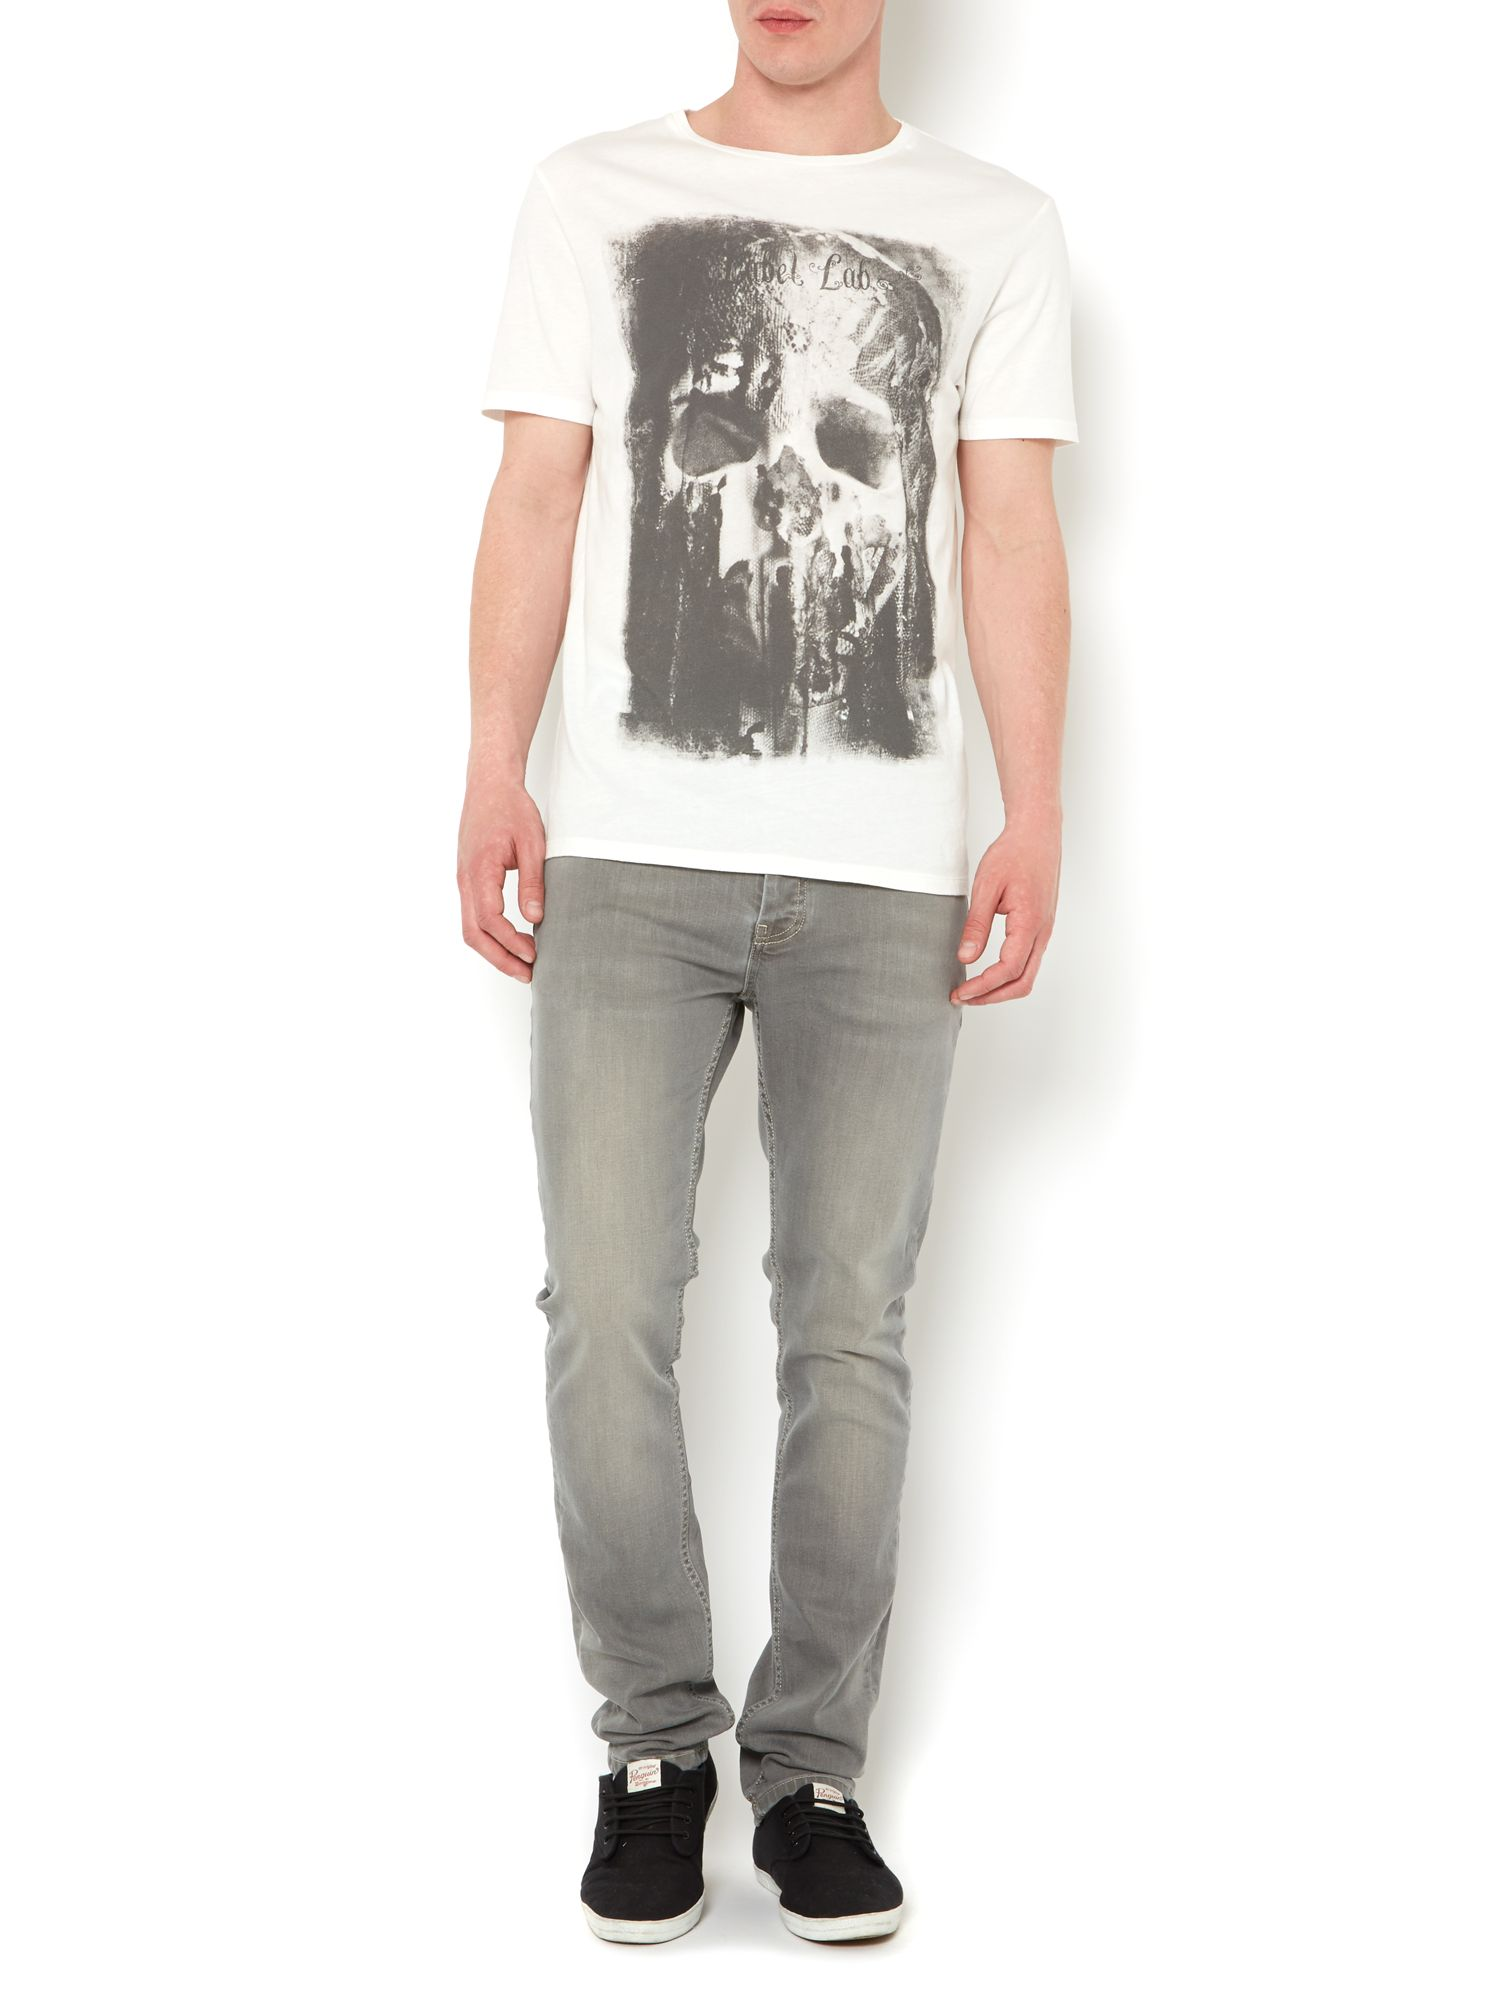 Torrino graphic T-shirt